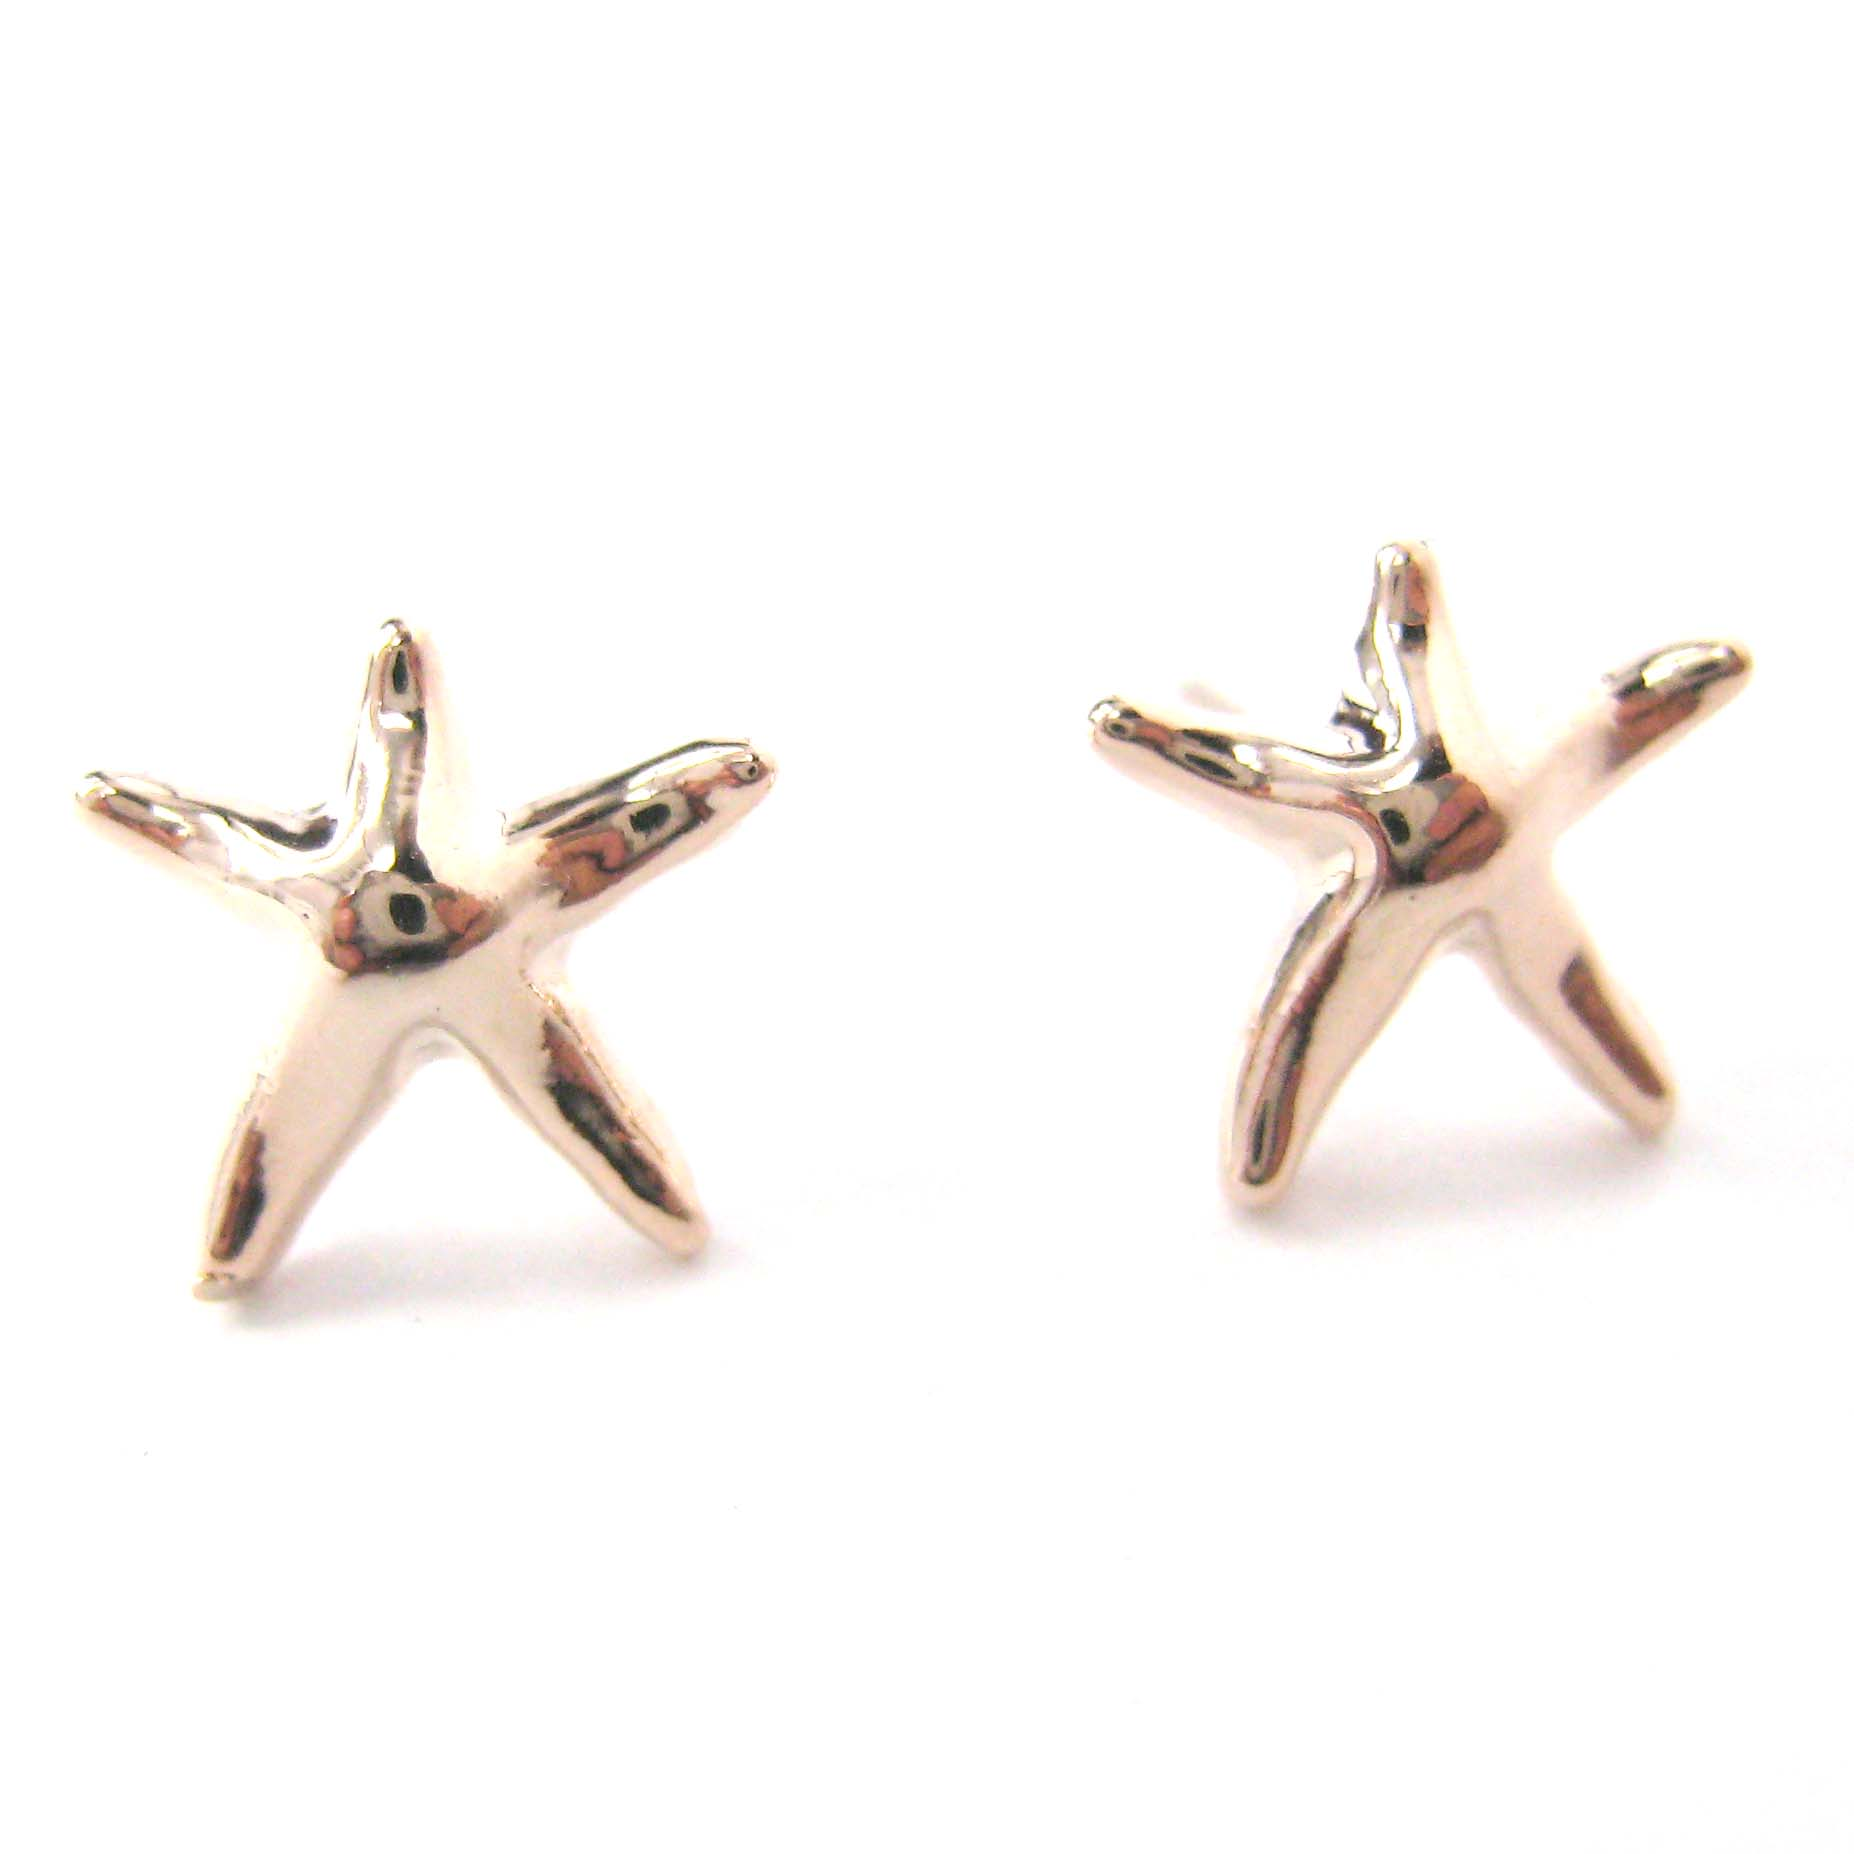 etoile piercing nez carats or taille starfish mer yellow gold nose stud jaune